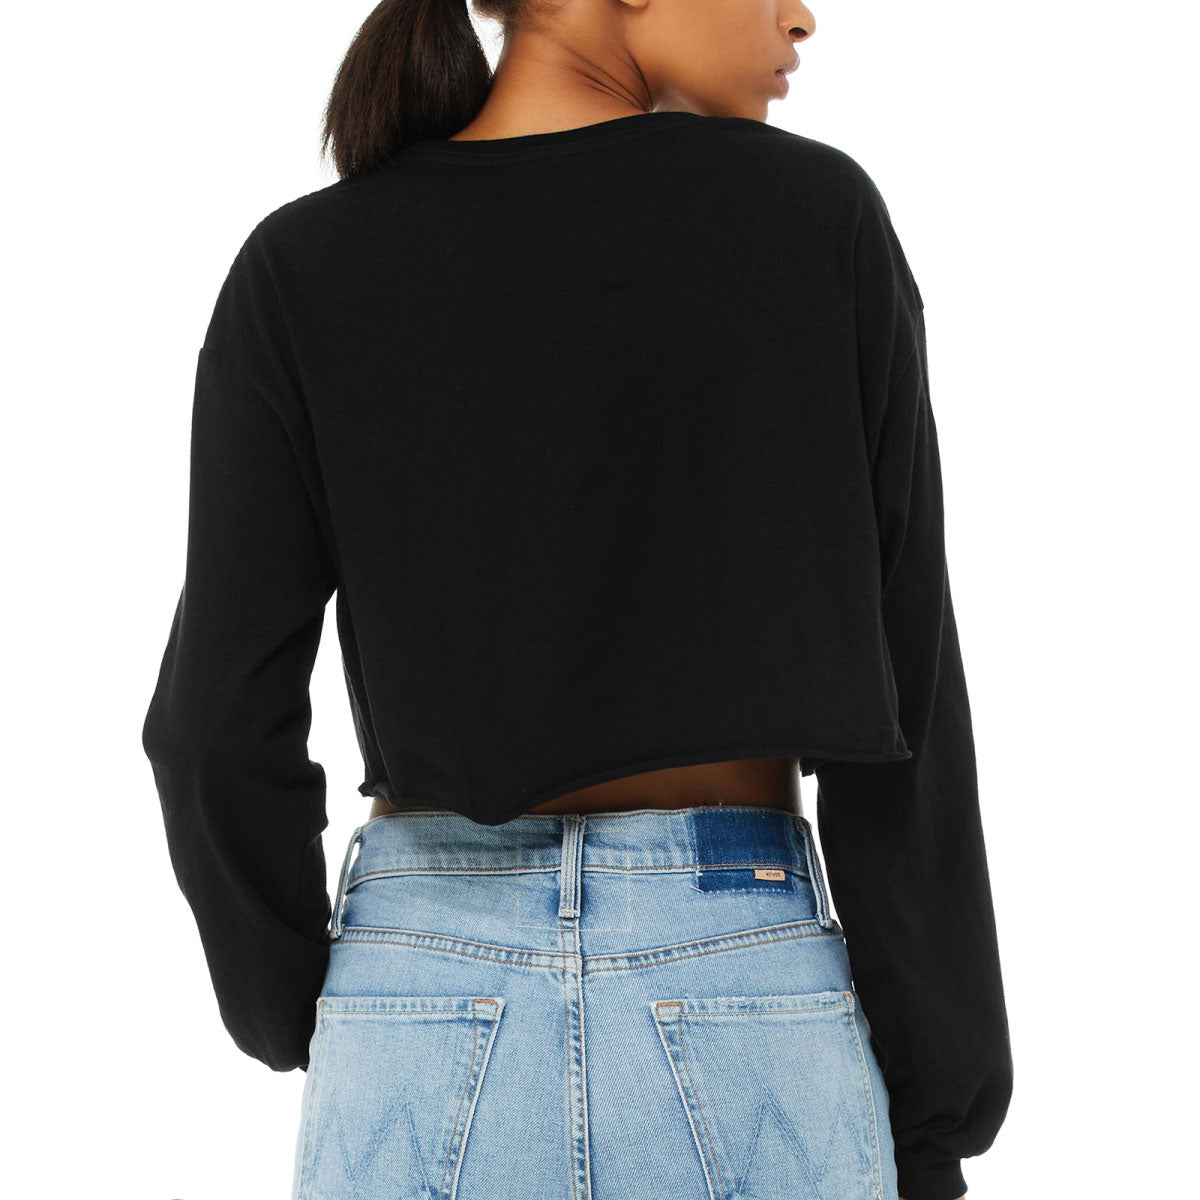 Never Skip Leg Day Cropped Long Sleeve Tee